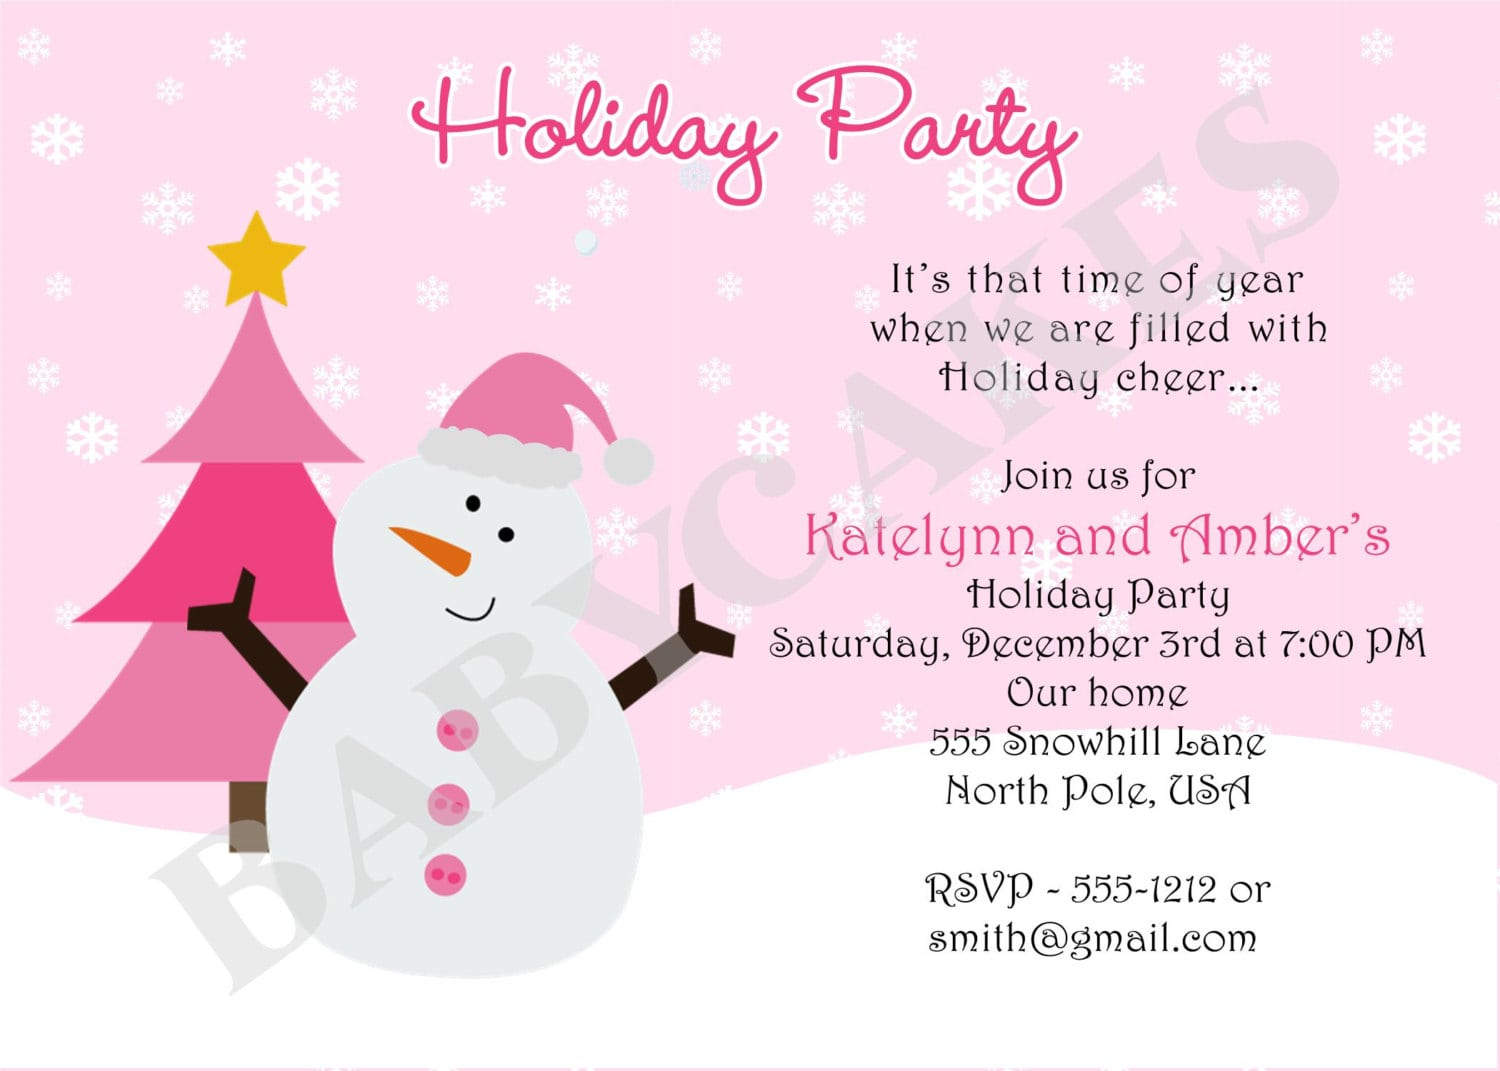 Business Holiday Party Invitation Wording